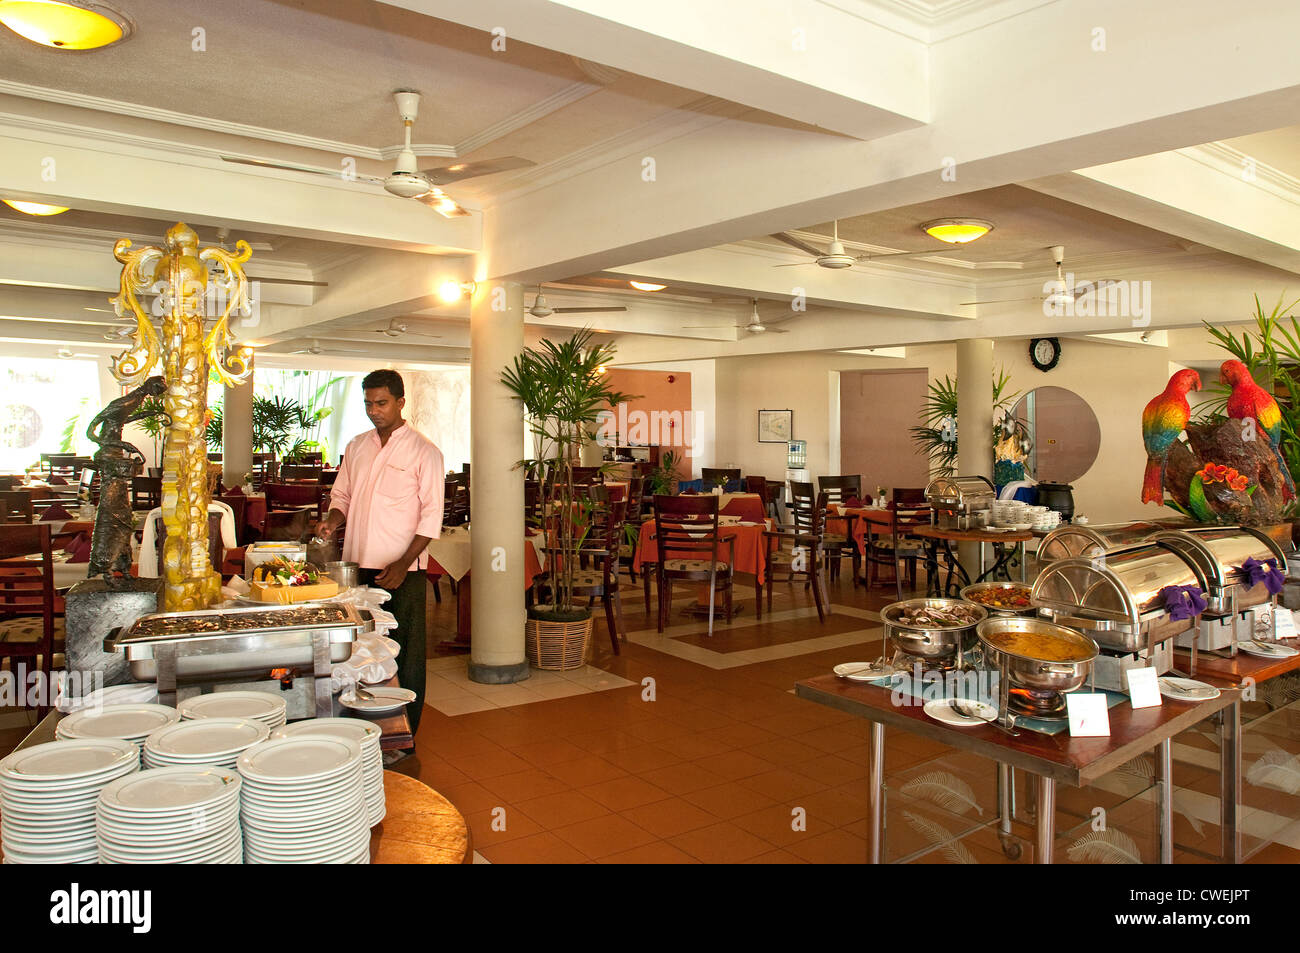 Palm Garden Restaurant Stock Photos & Palm Garden Restaurant Stock ...